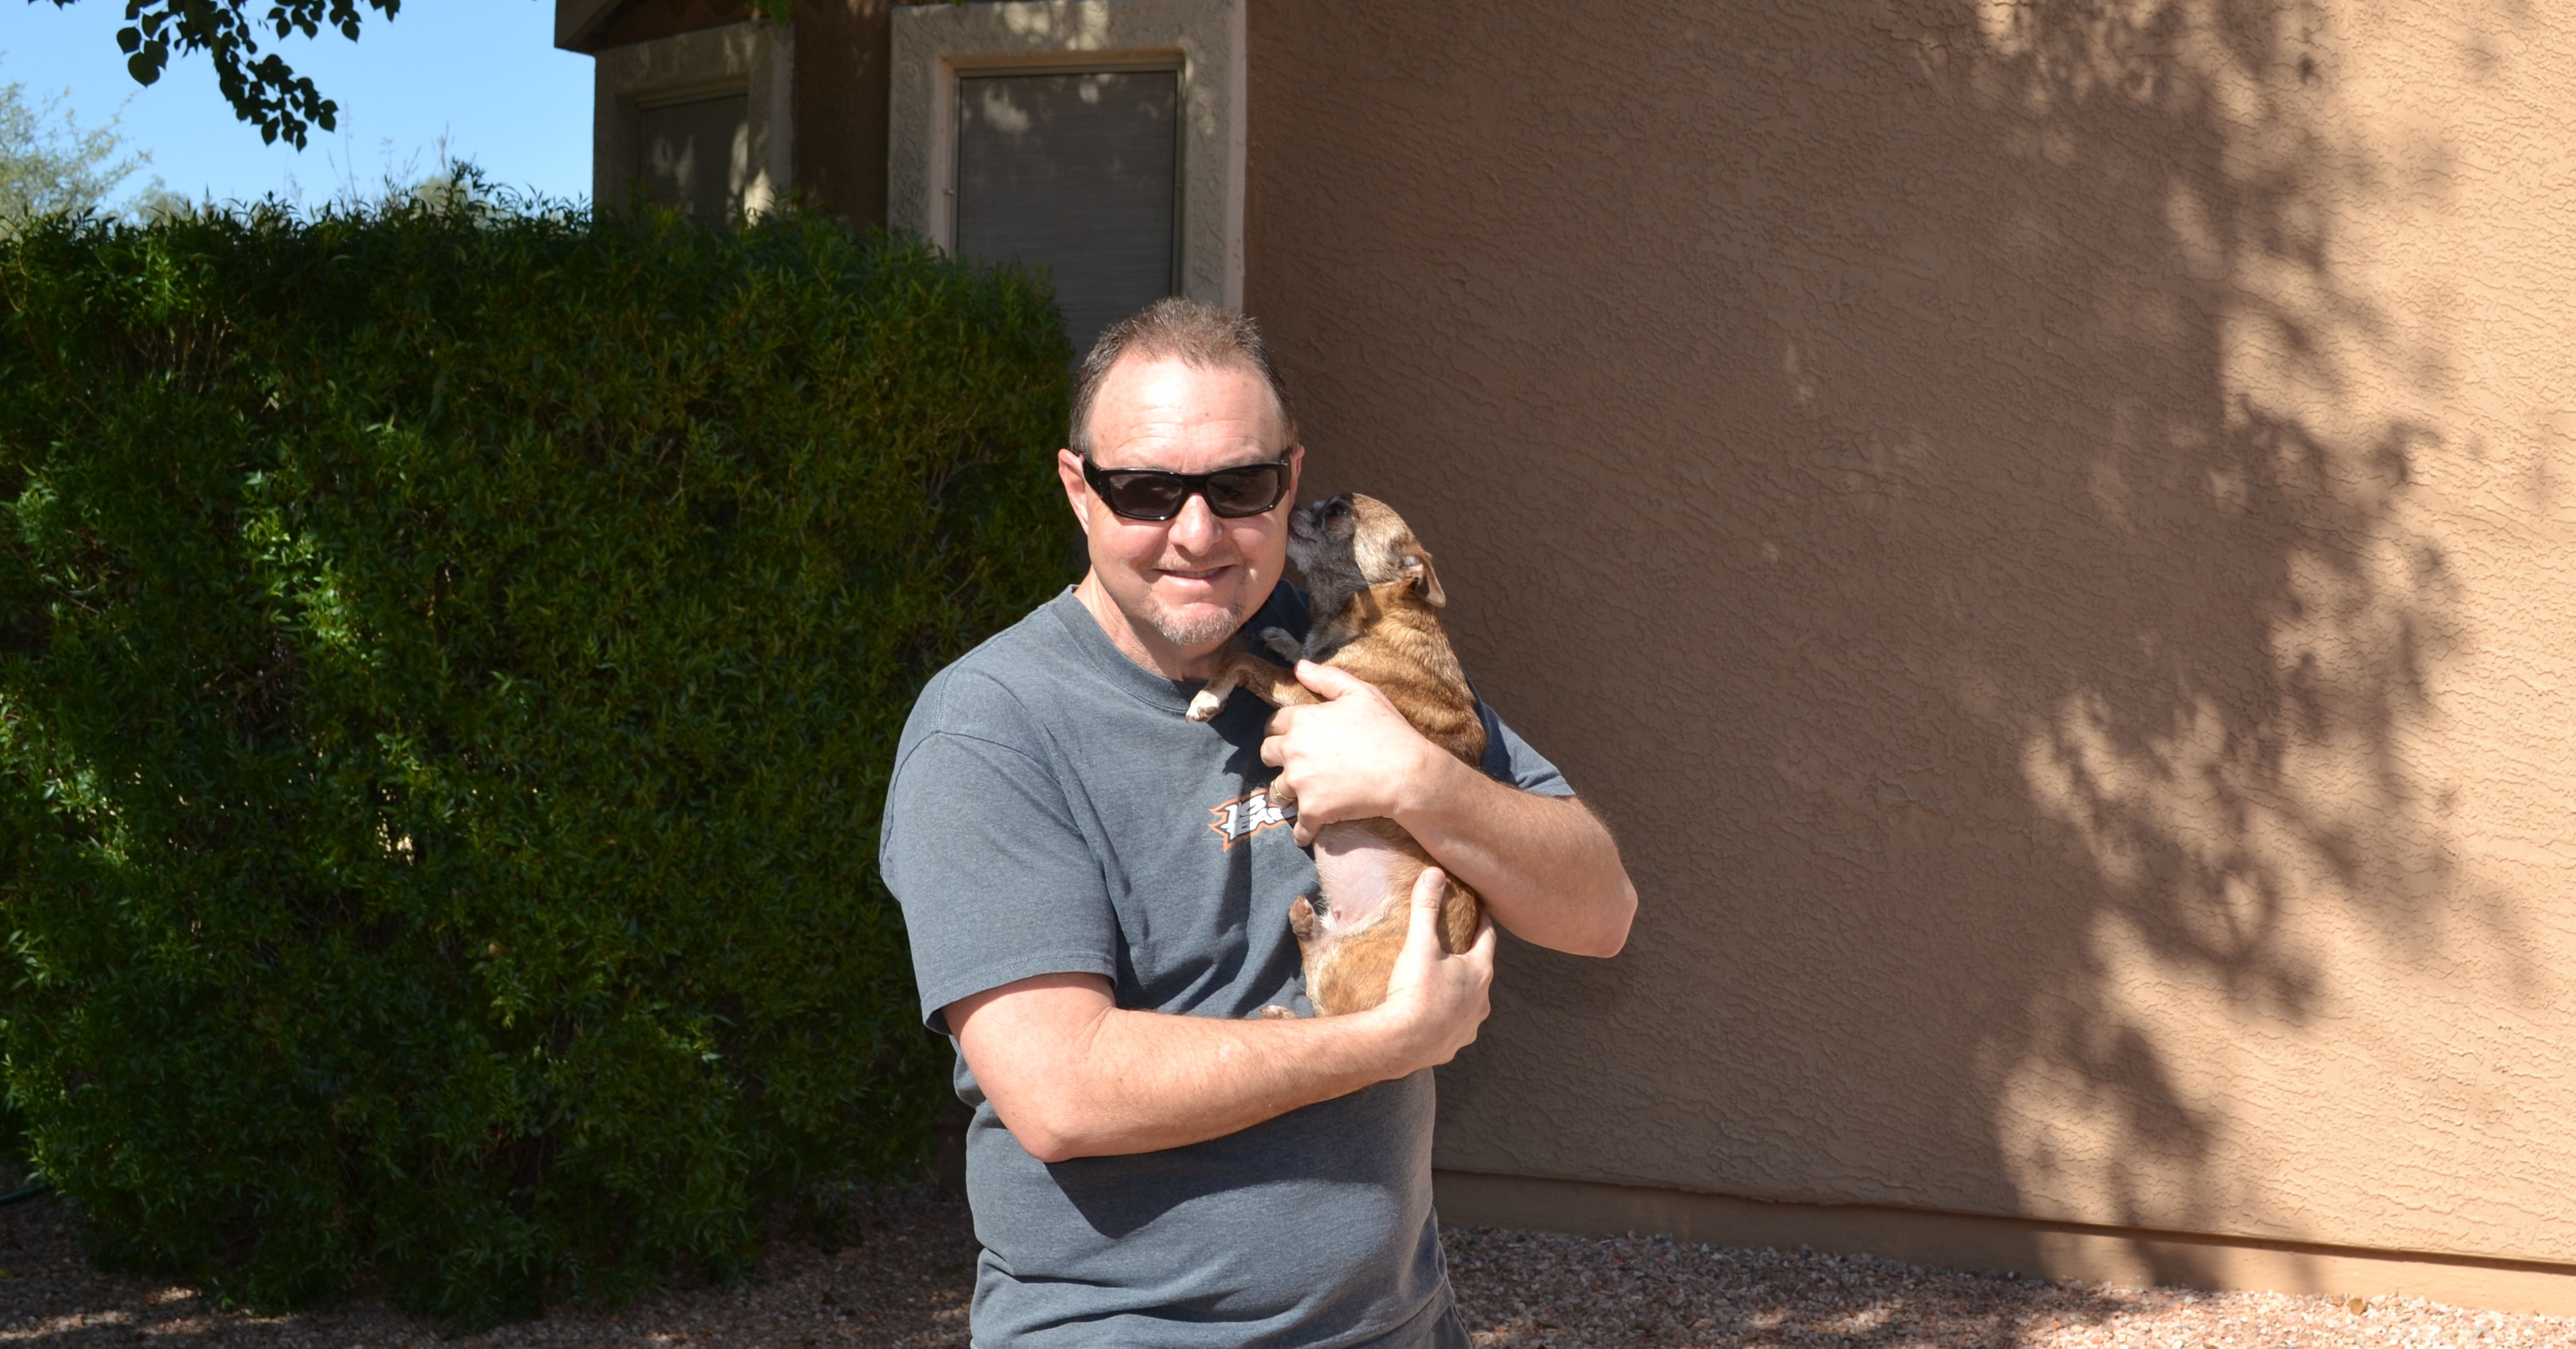 Pet Sitter in Peoria AZ